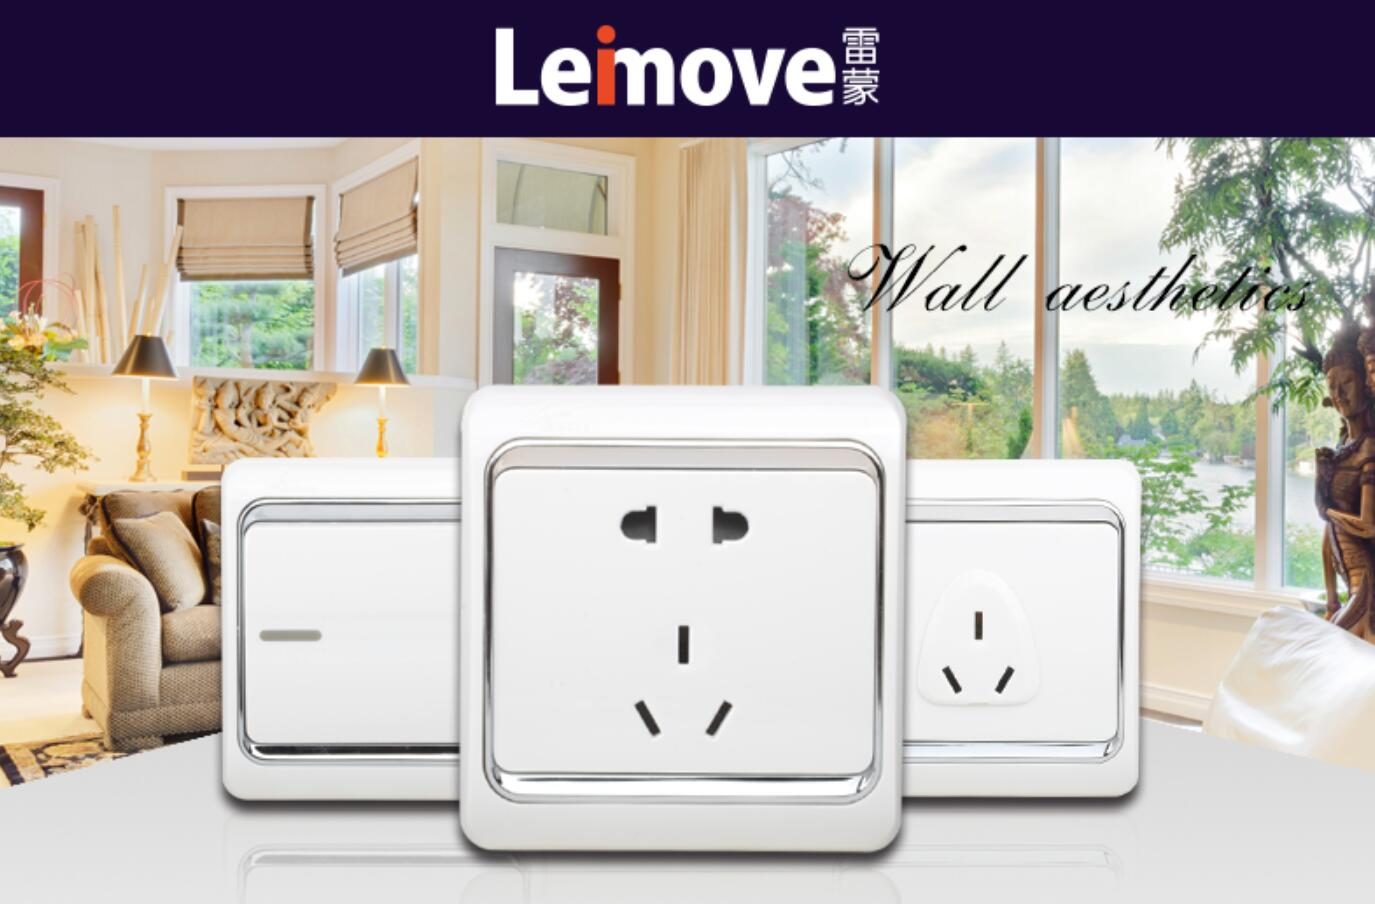 Leimove-High-quality Single Telephone Jack Lmca | Ling Xuan White Series